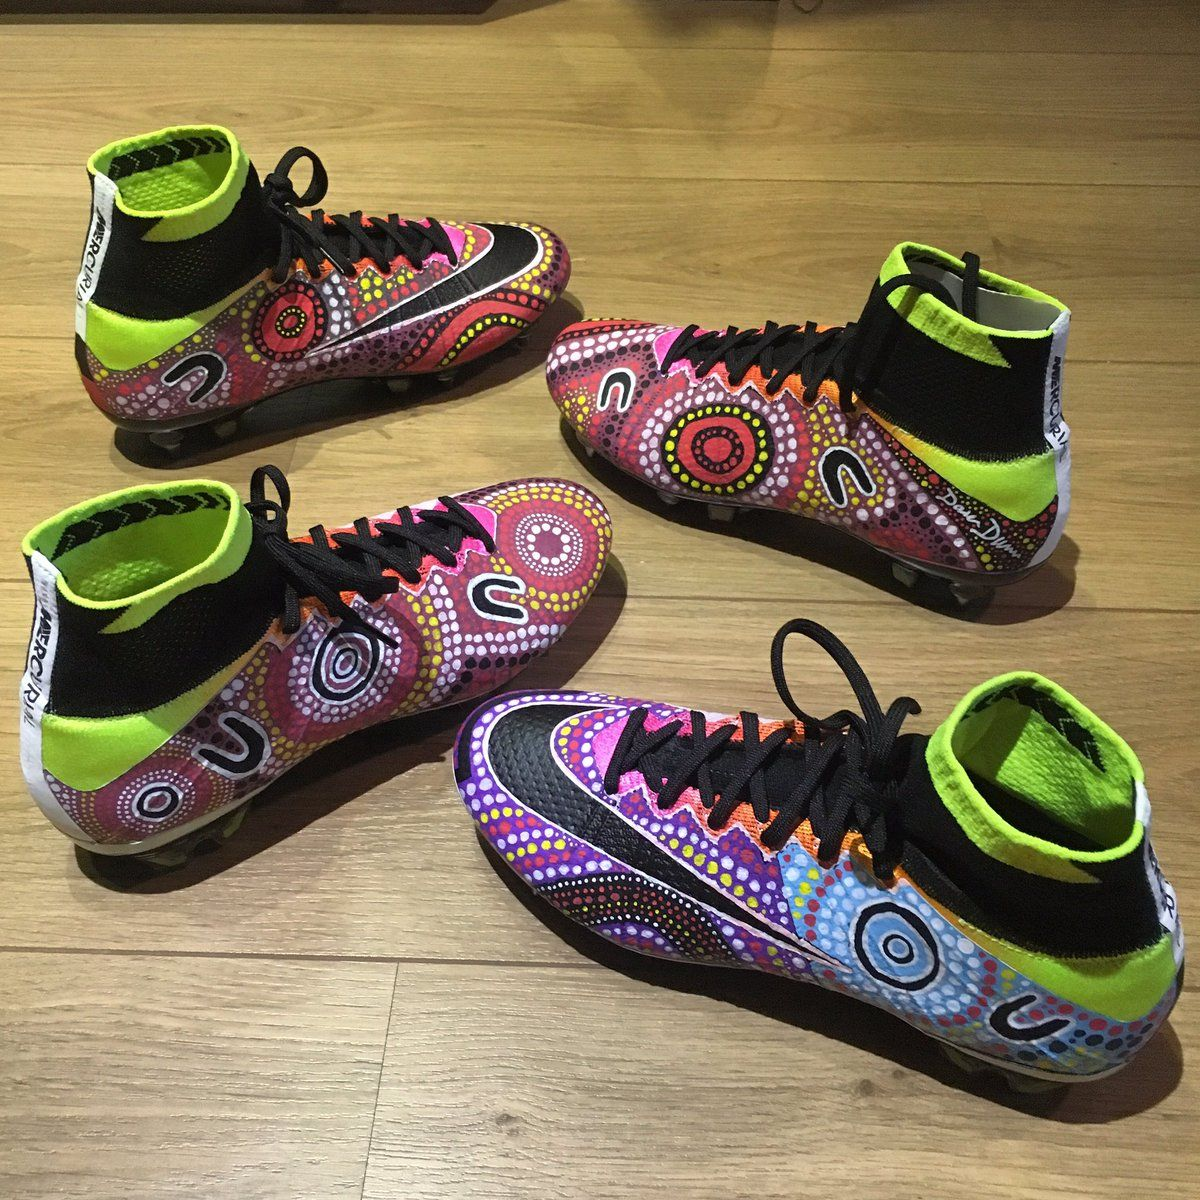 The Nike Mercurial Superfly boots of indigenous Australian player Kyah  Simon boast an outstanding Aboriginal-art inspired design. 48c31cb2ebf